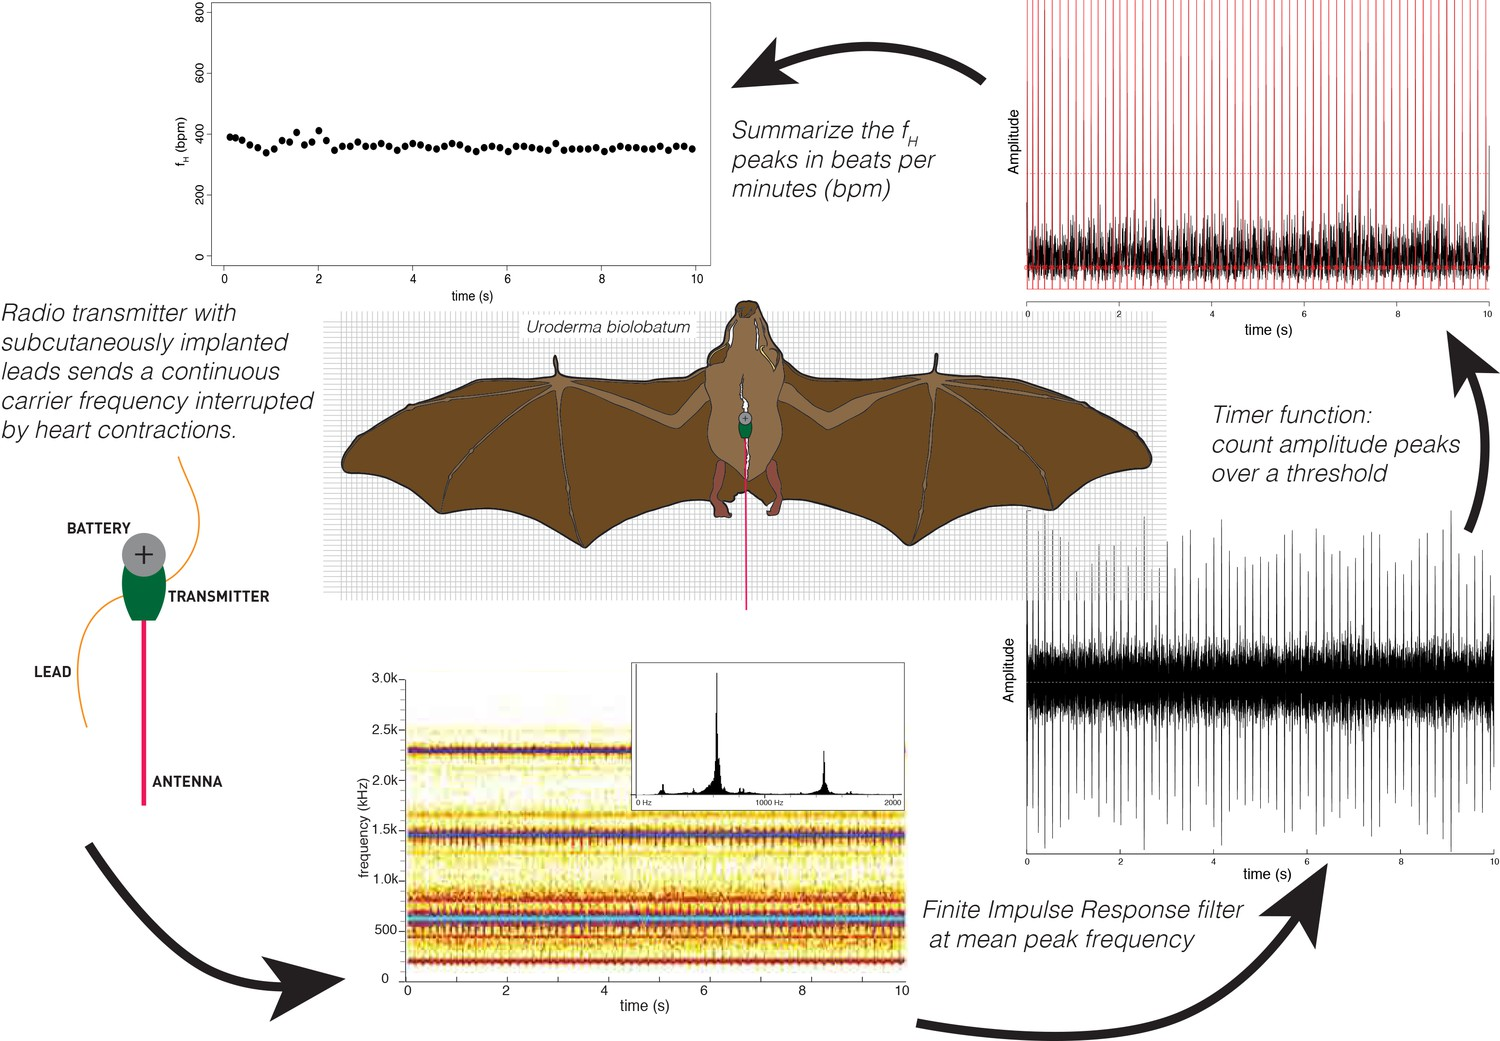 Processing Heart Rate Fh Radio Signals To Extract Rates Of Free Ranging Bats